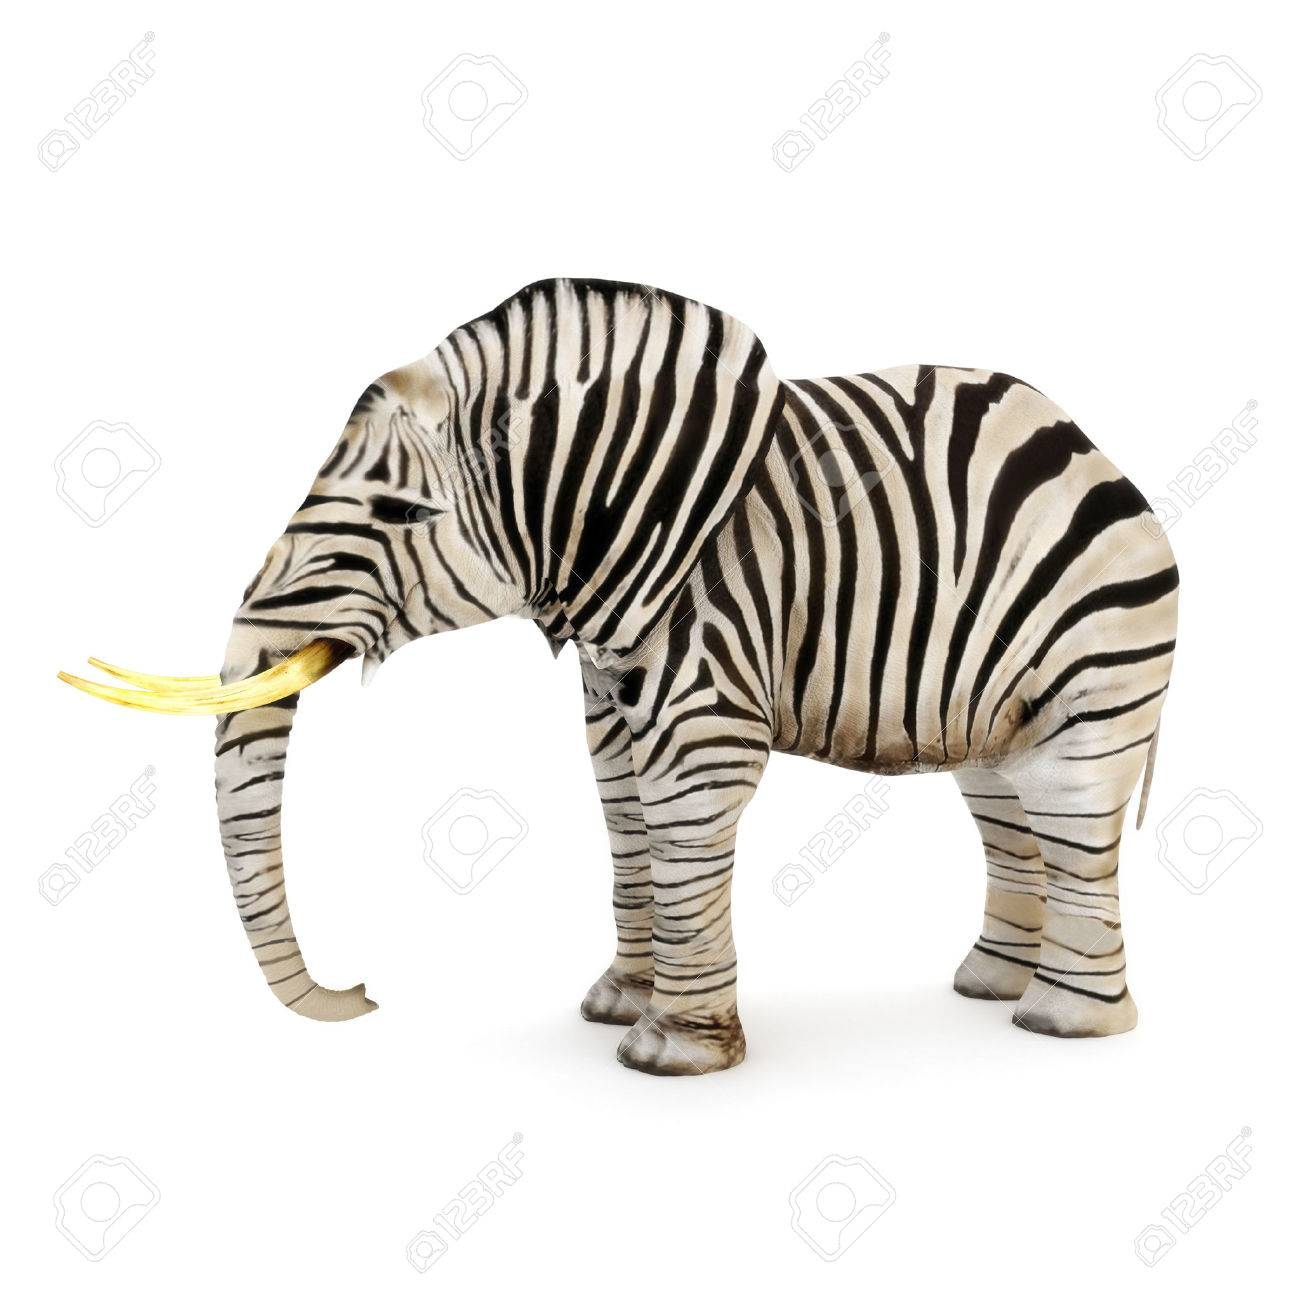 Different, Elephant with zebra stripes on a white background - 30181911